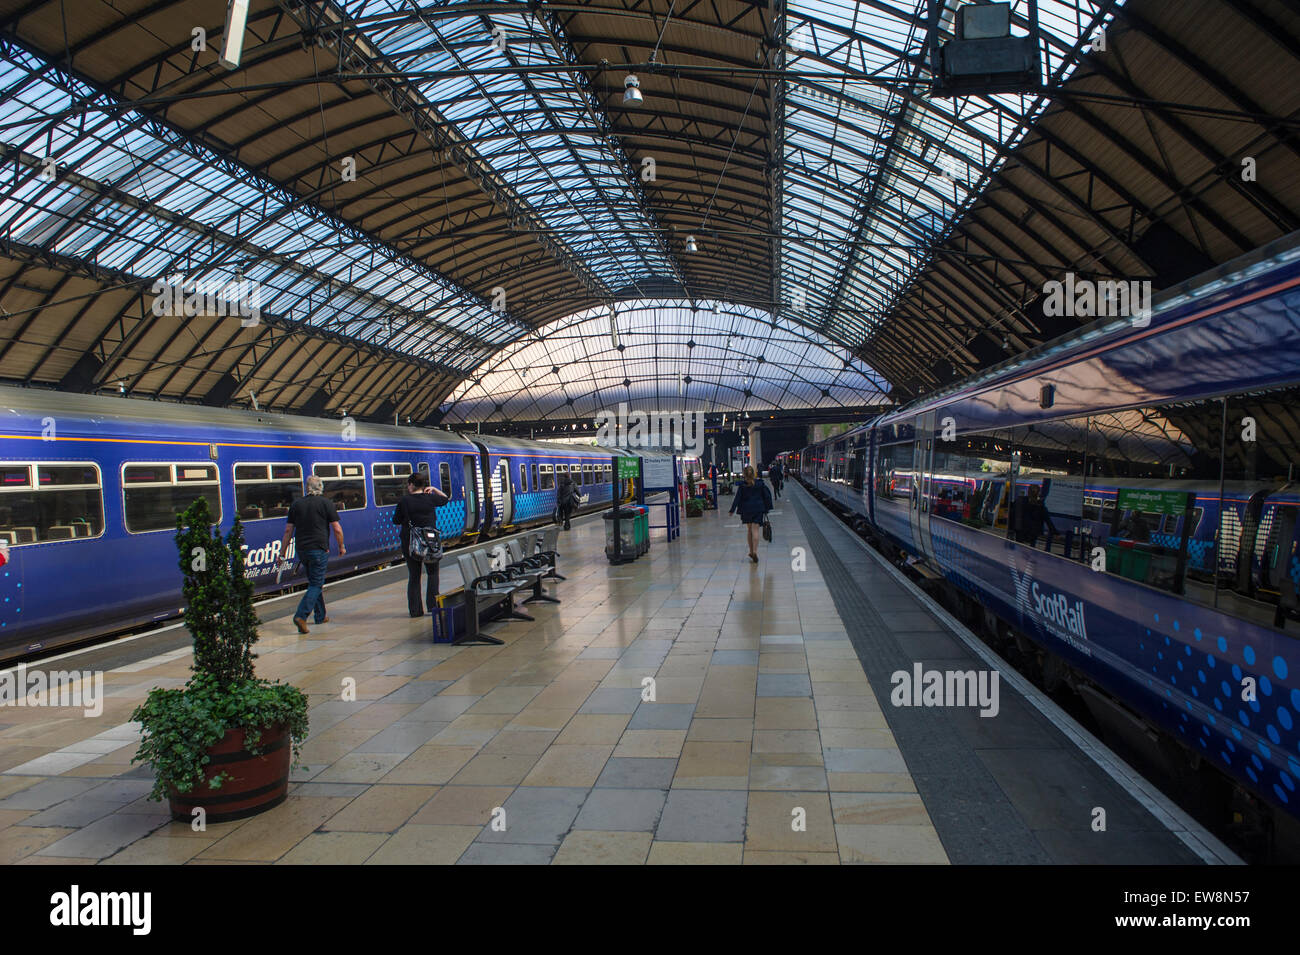 Scotrail trains at Glasgow Queen Street station - Stock Image